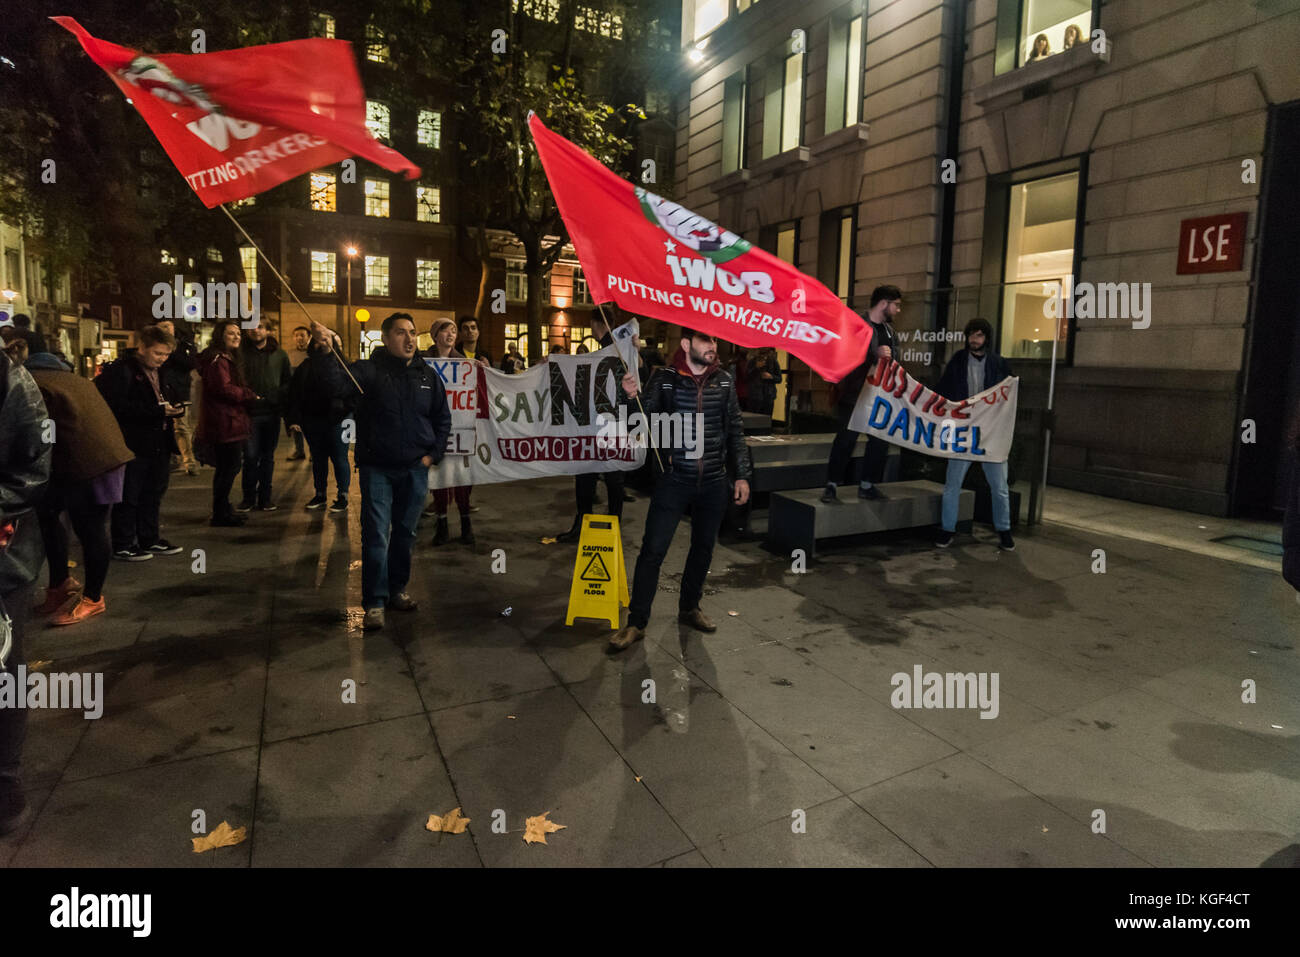 November 6, 2017 - London, UK. 6th November 2017. LSE students and supportersfrom the IWGB union protest against - Stock Image